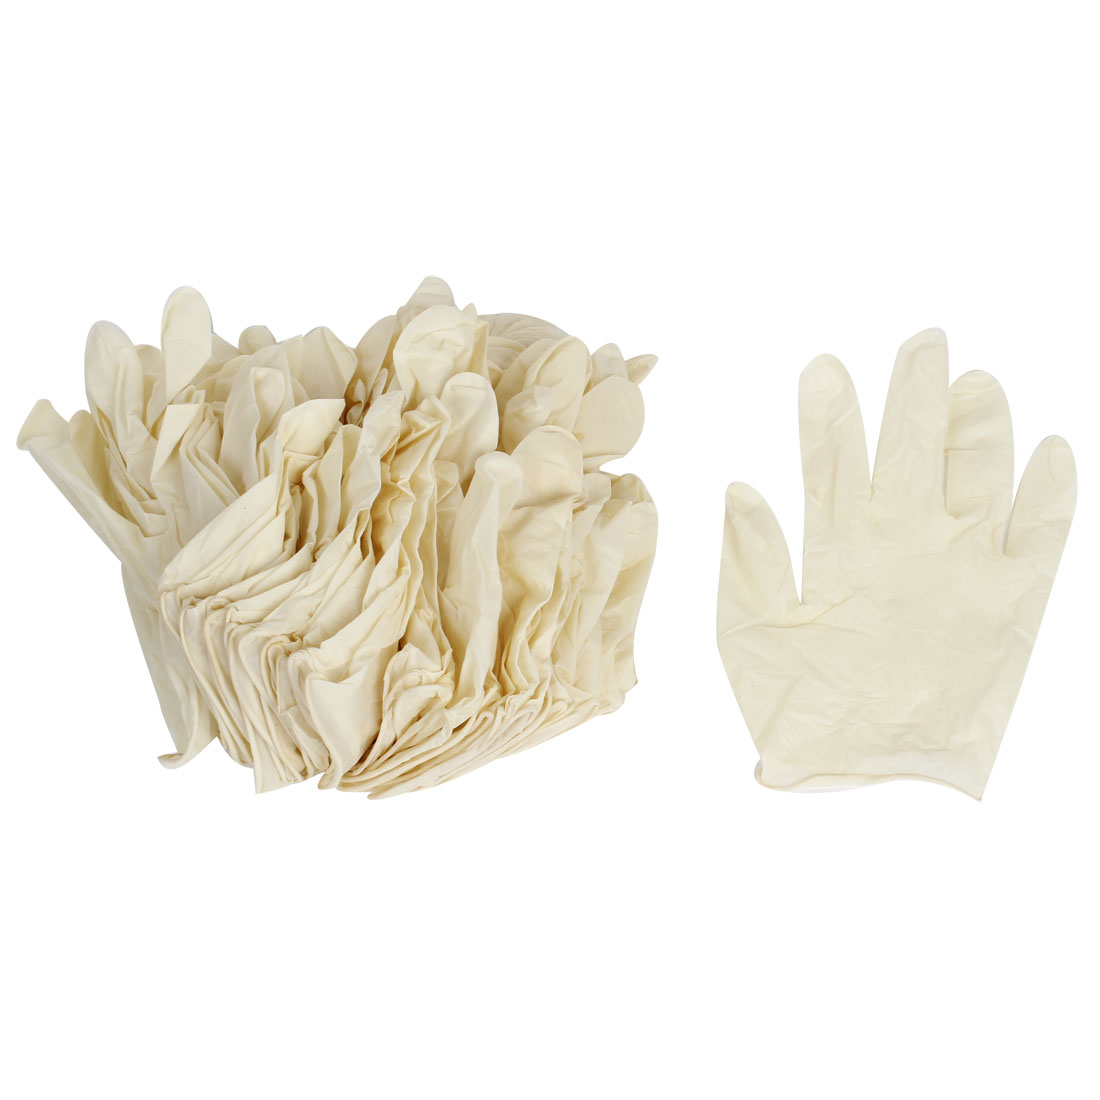 Beige Disposable Anti-static ESD Latex Work Gloves 50 Pairs